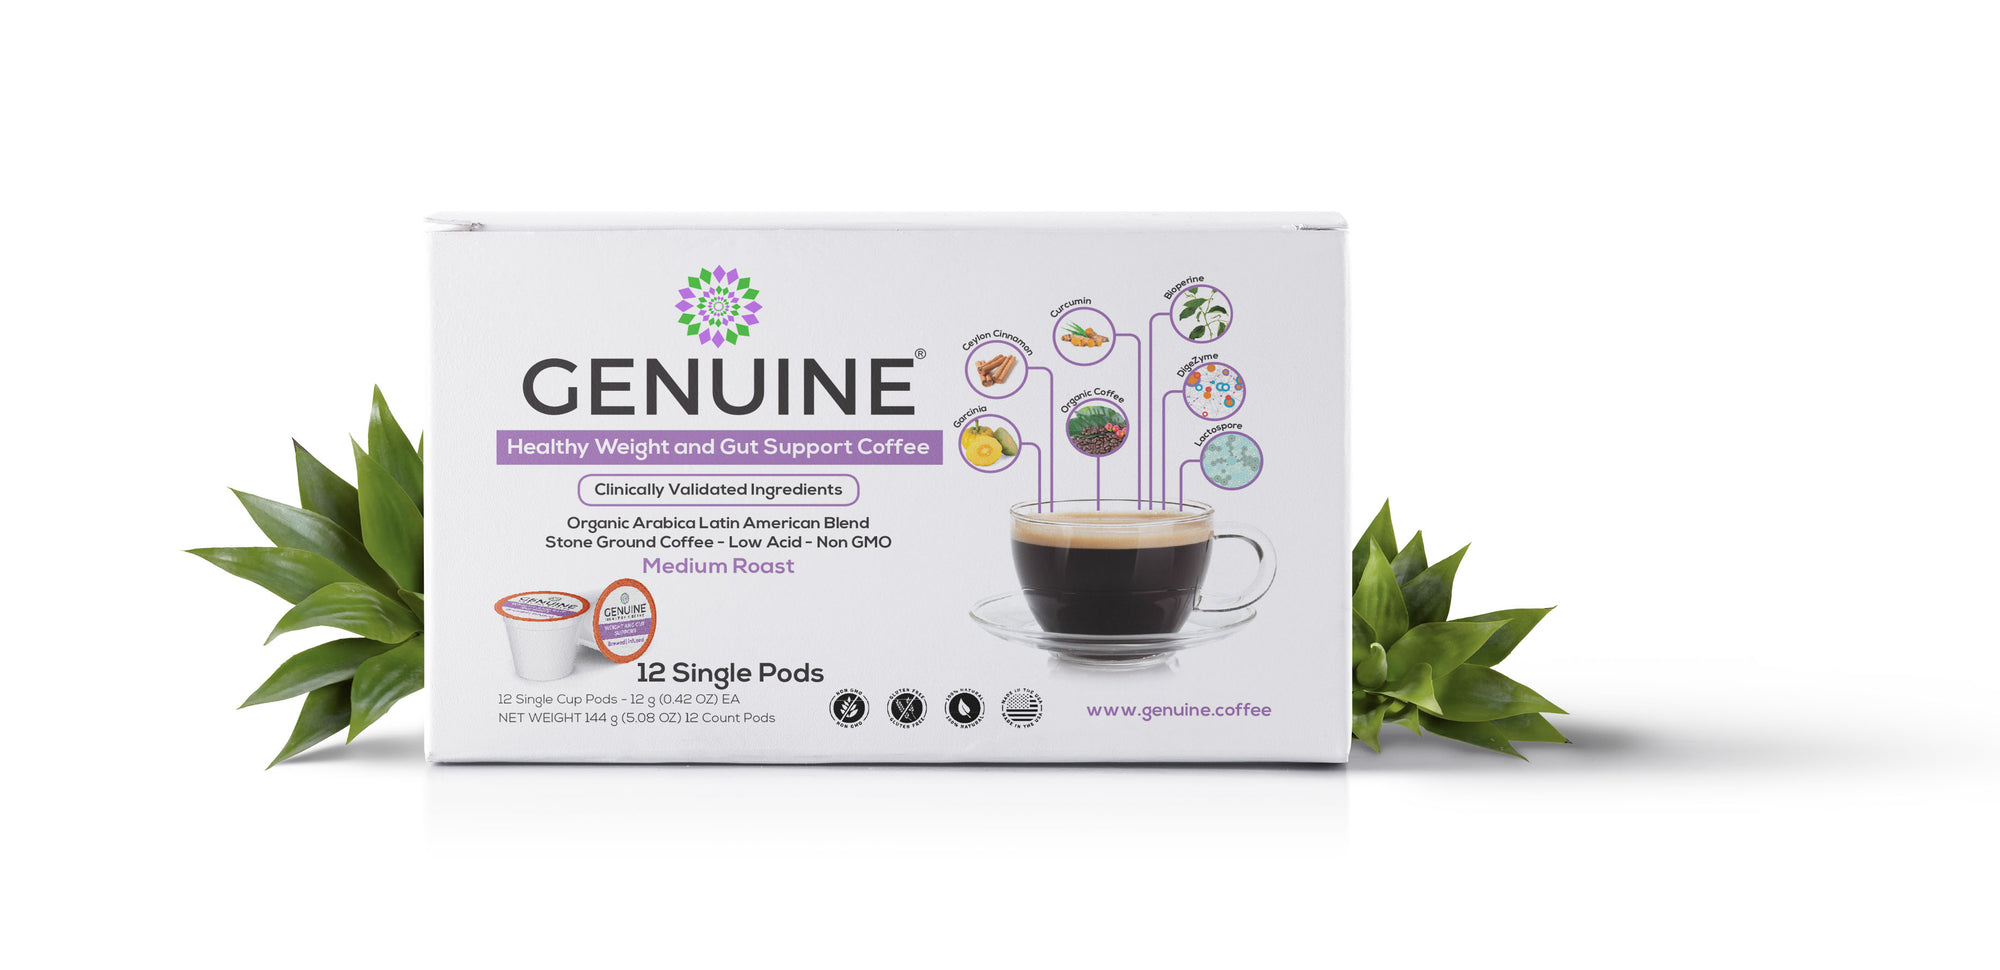 GENUINE Healthy Weight and Gut Support Coffee